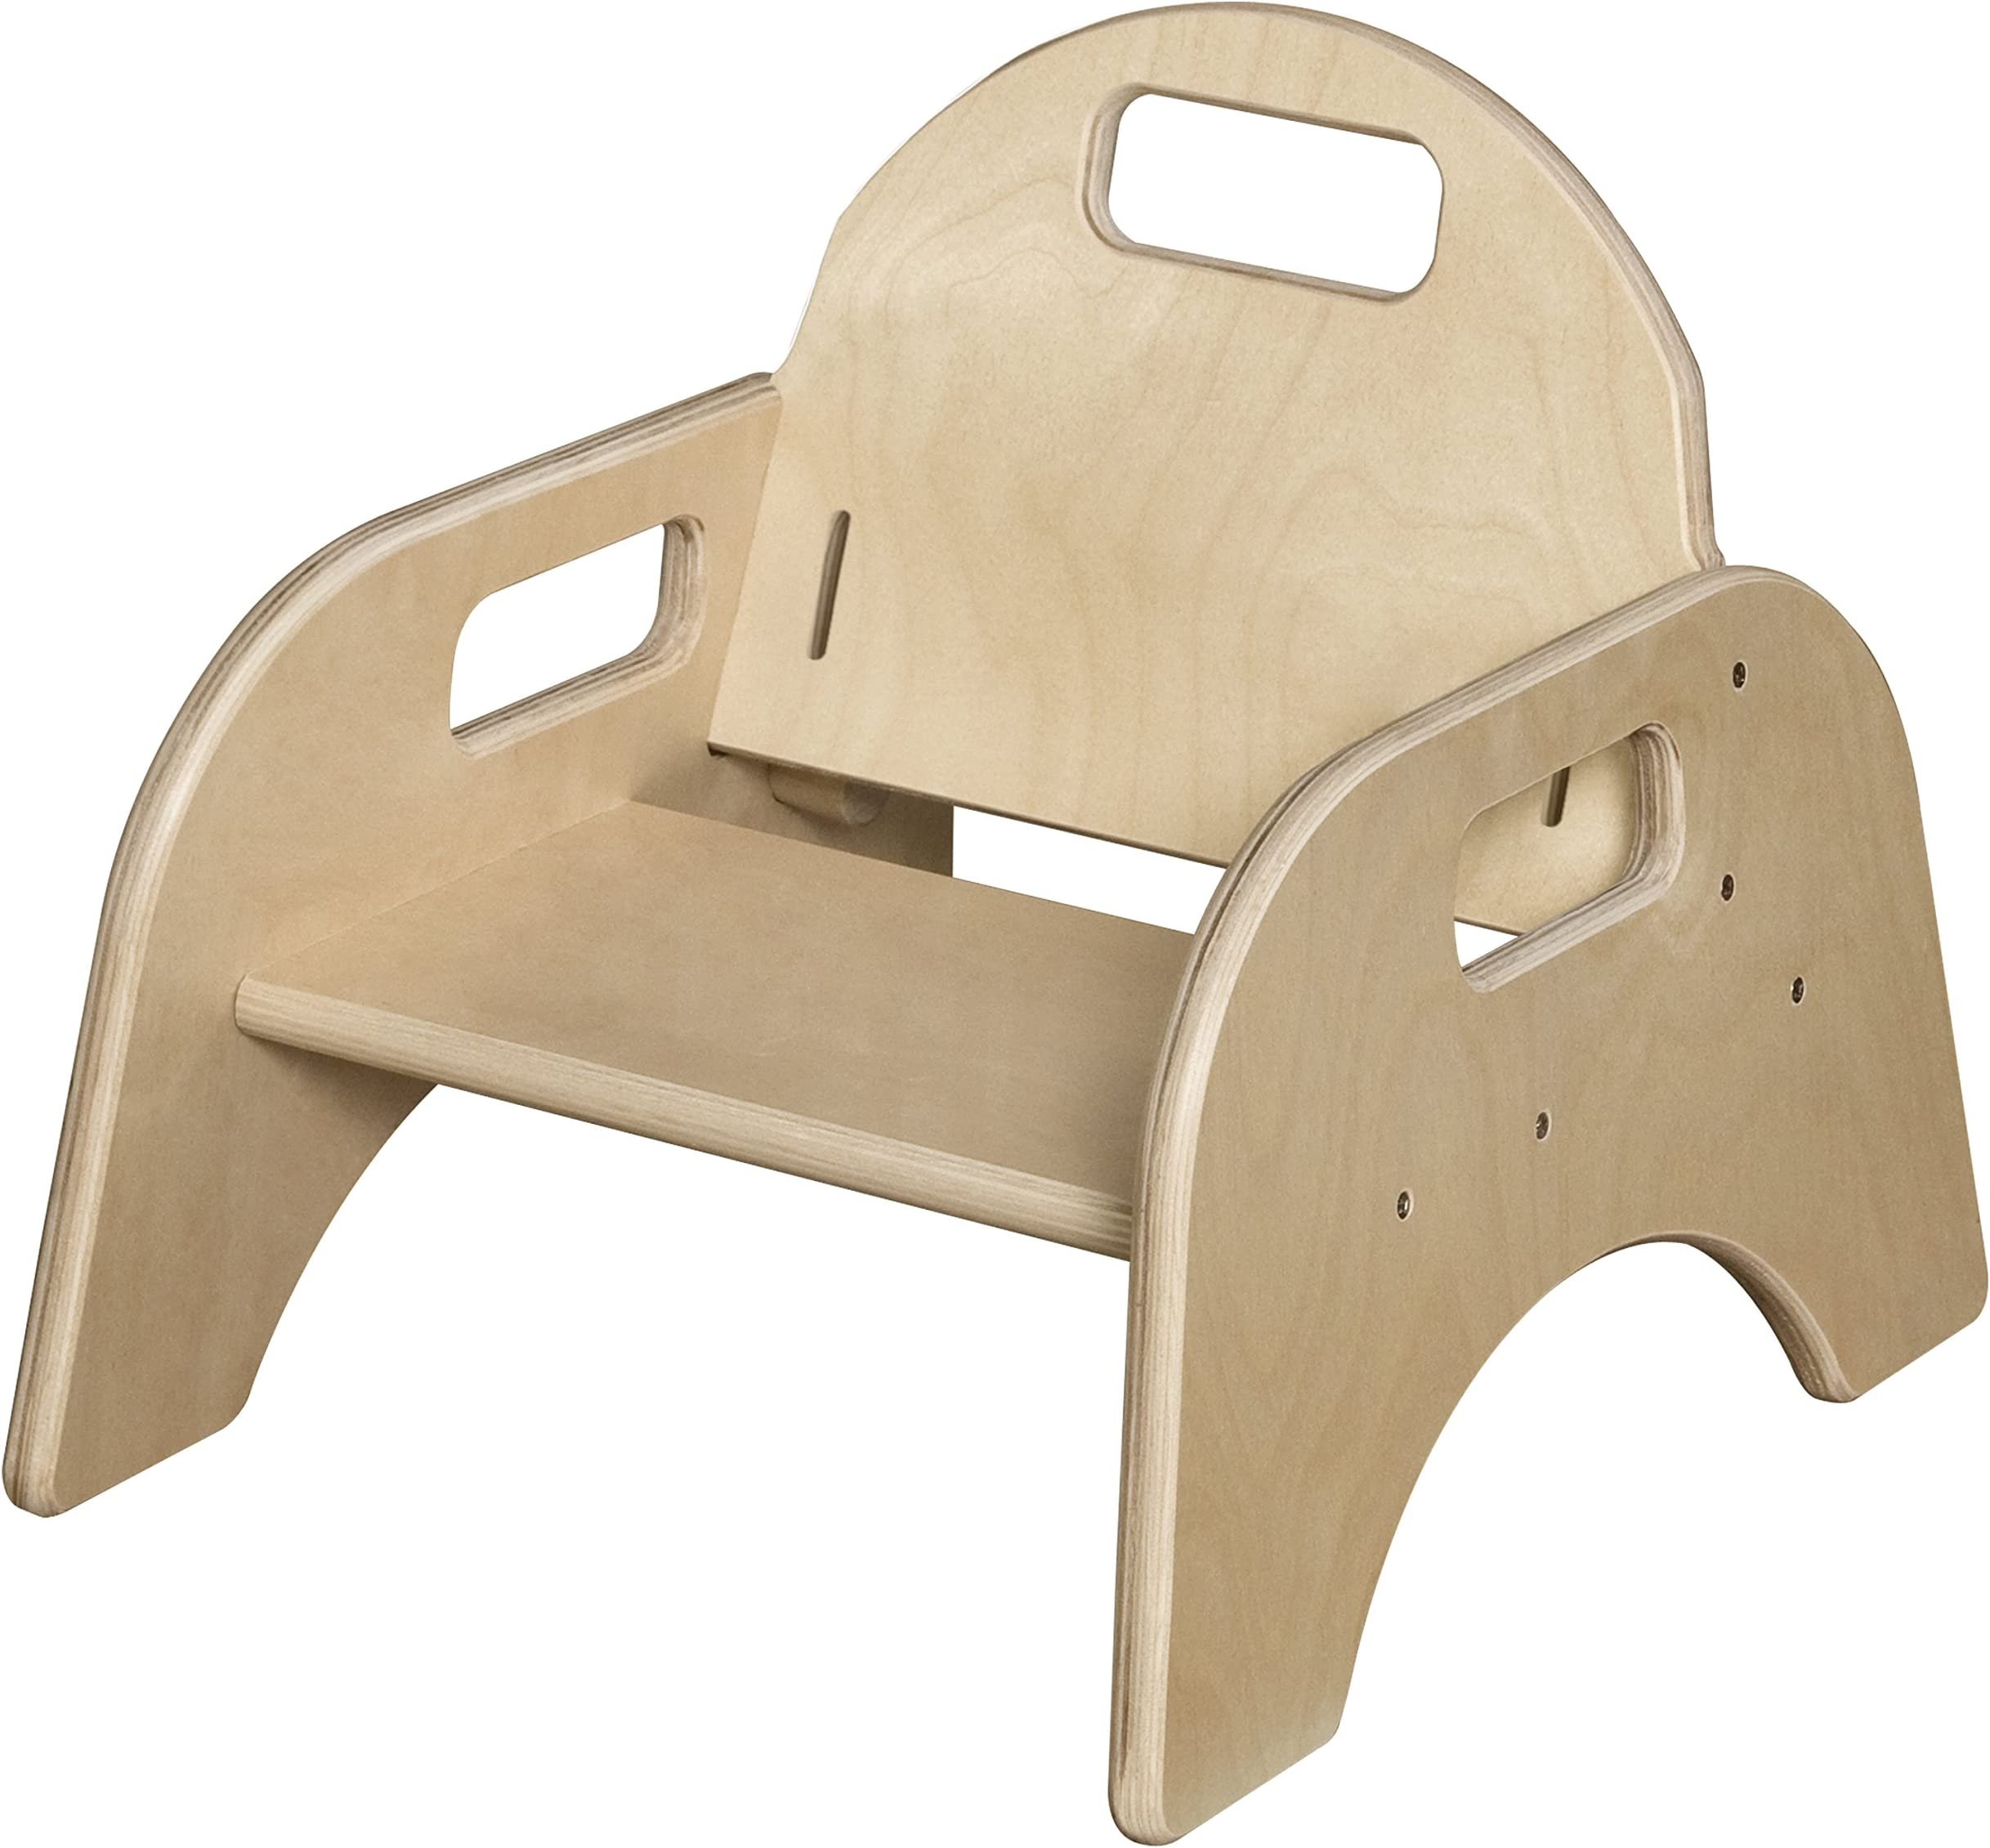 9 High Seat Wood Designs Stackable Woodie Toddler Chair Set of 2